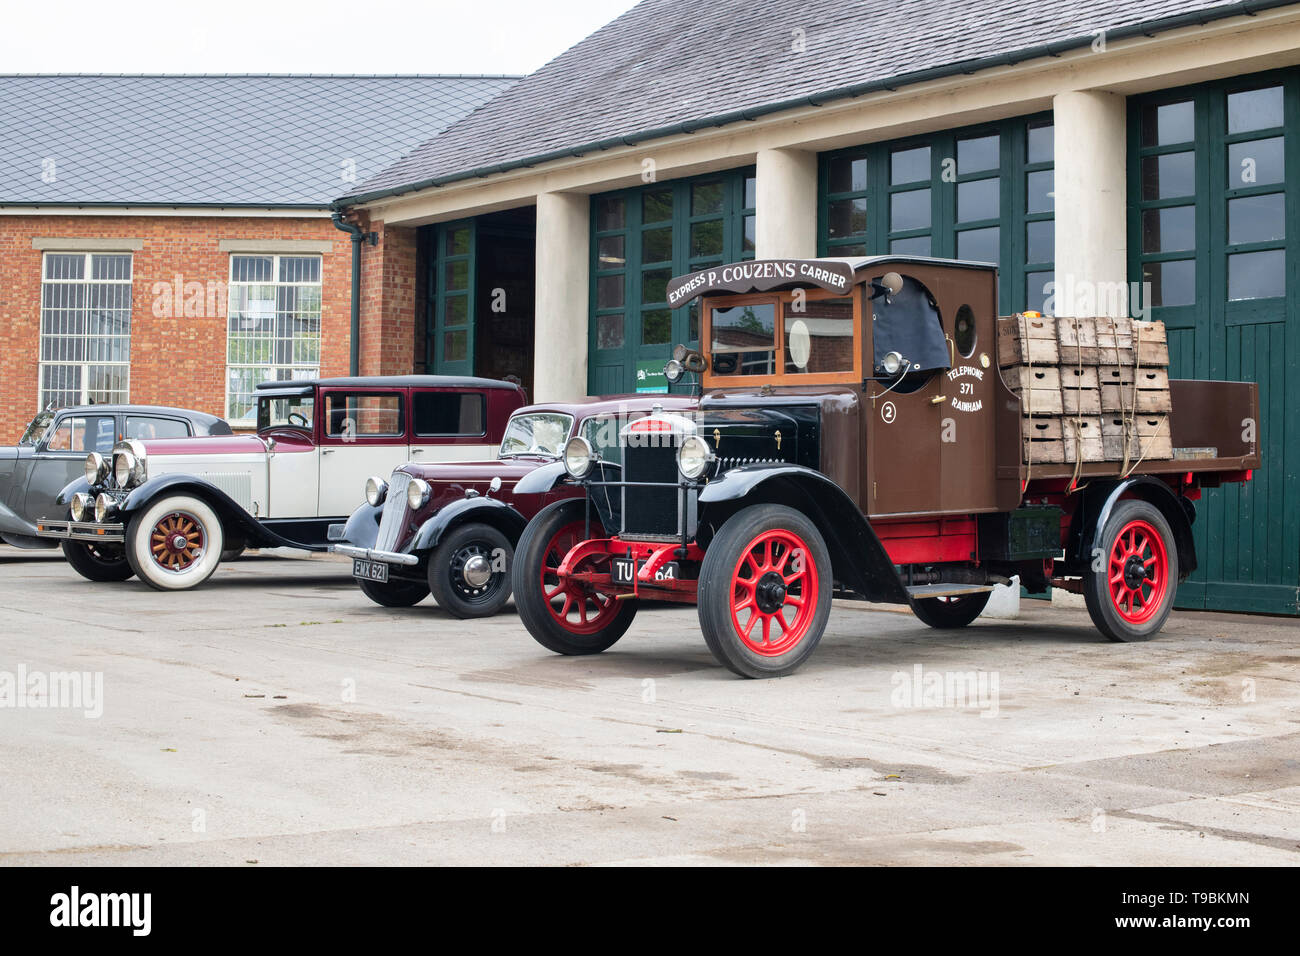 Vintage lorry and cars outside a garage at Bicester Heritage Centre 'Drive It Day'.  Bicester, Oxfordshire, England. - Stock Image